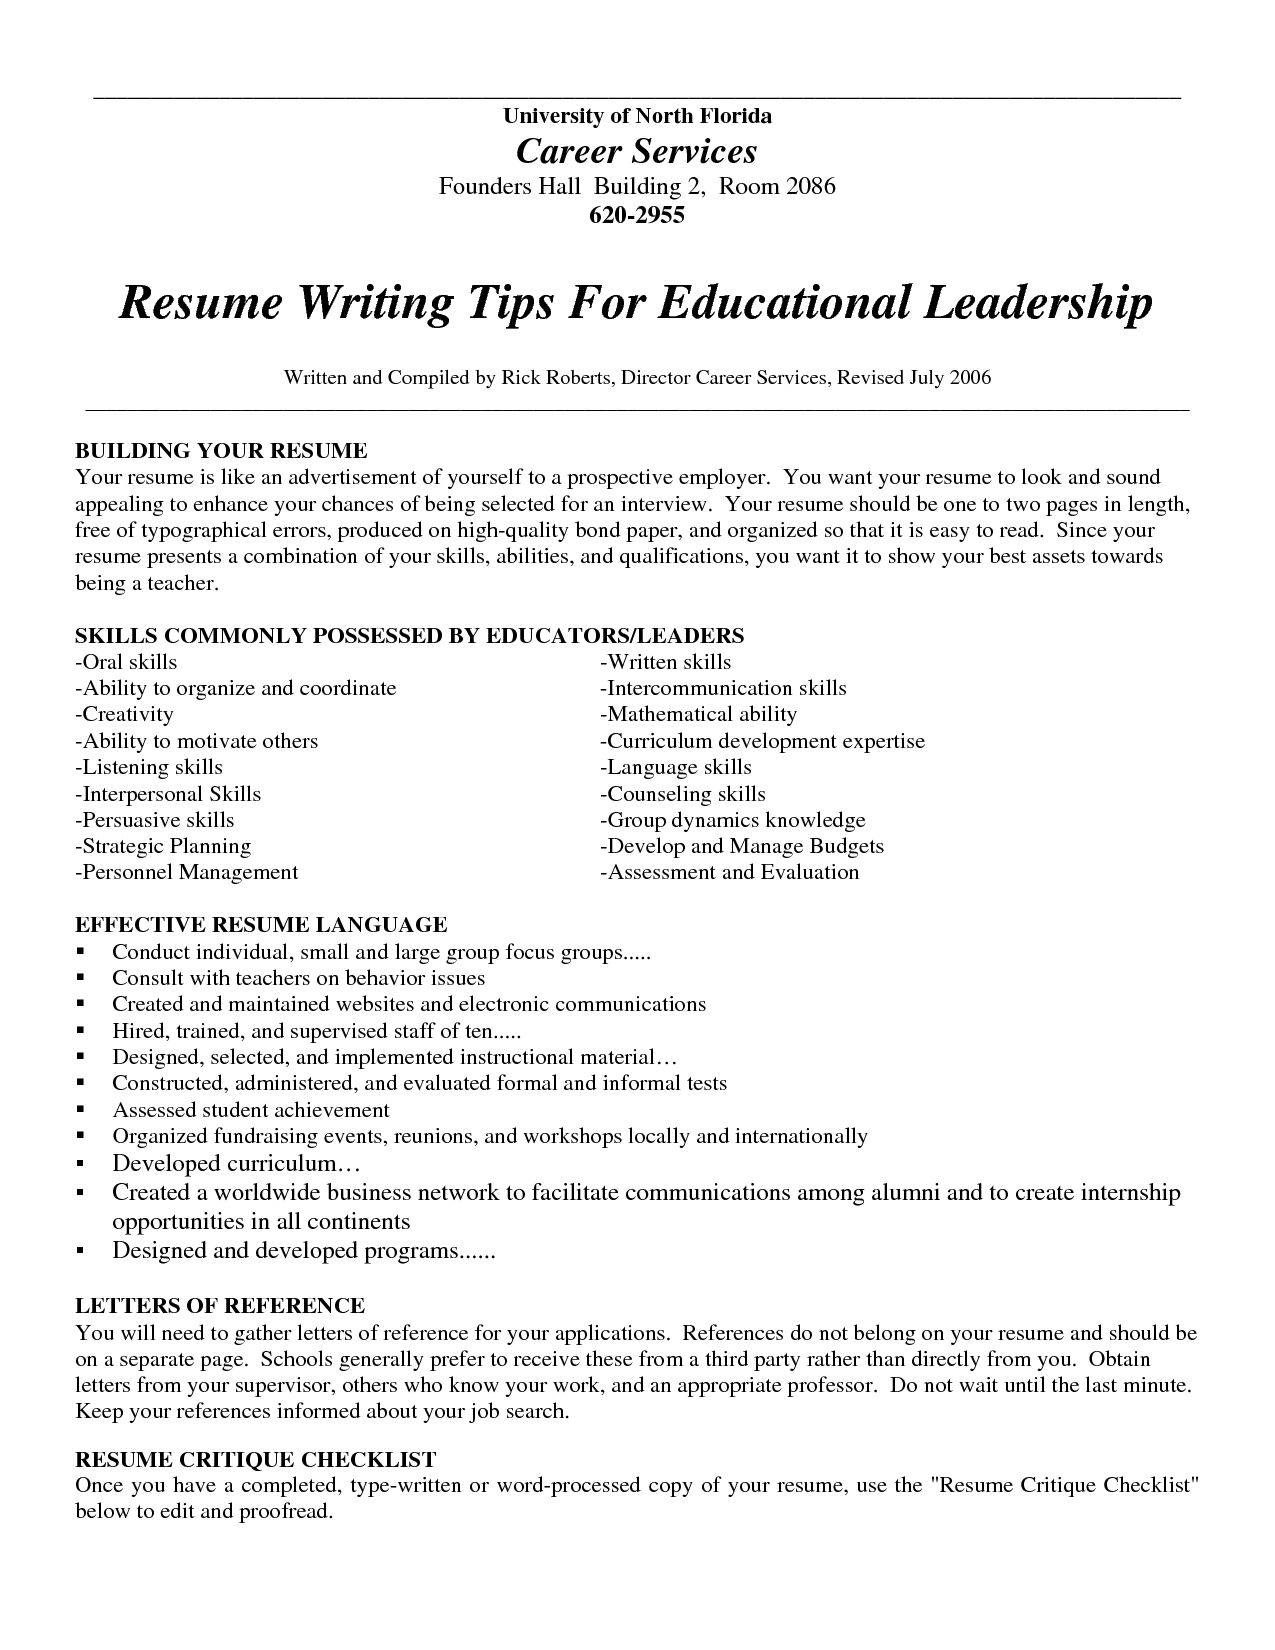 author resume grant writer resume grant writer resume technical writer resume sample technical writer houston outplacement - Writers Resume Example